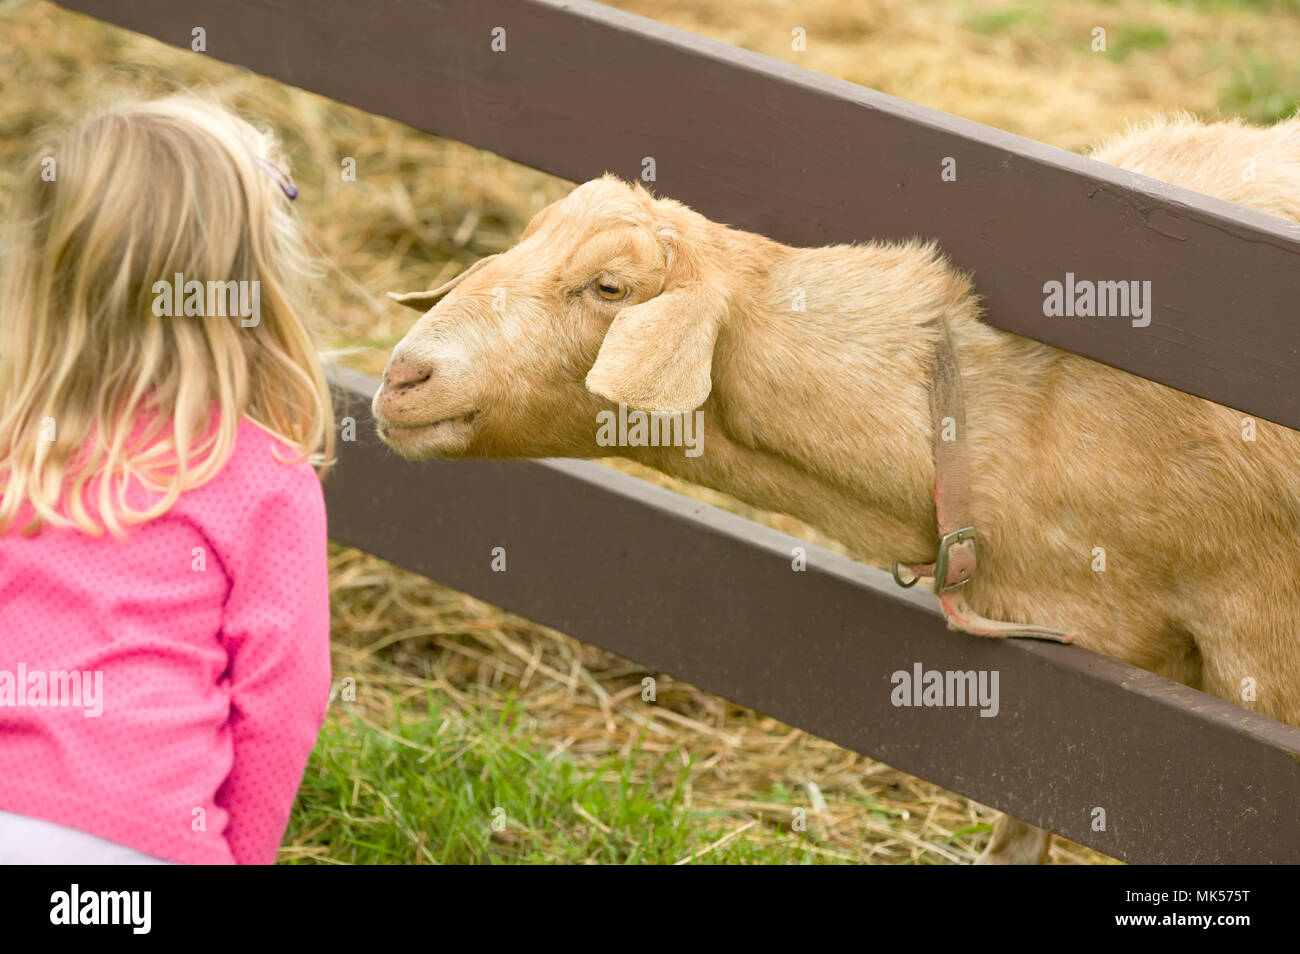 Fall City, Washington, USA.  Young girl looking at a Nubian goat 'Whassup' who is poking his head through the fence. (For editorial use only) - Stock Image